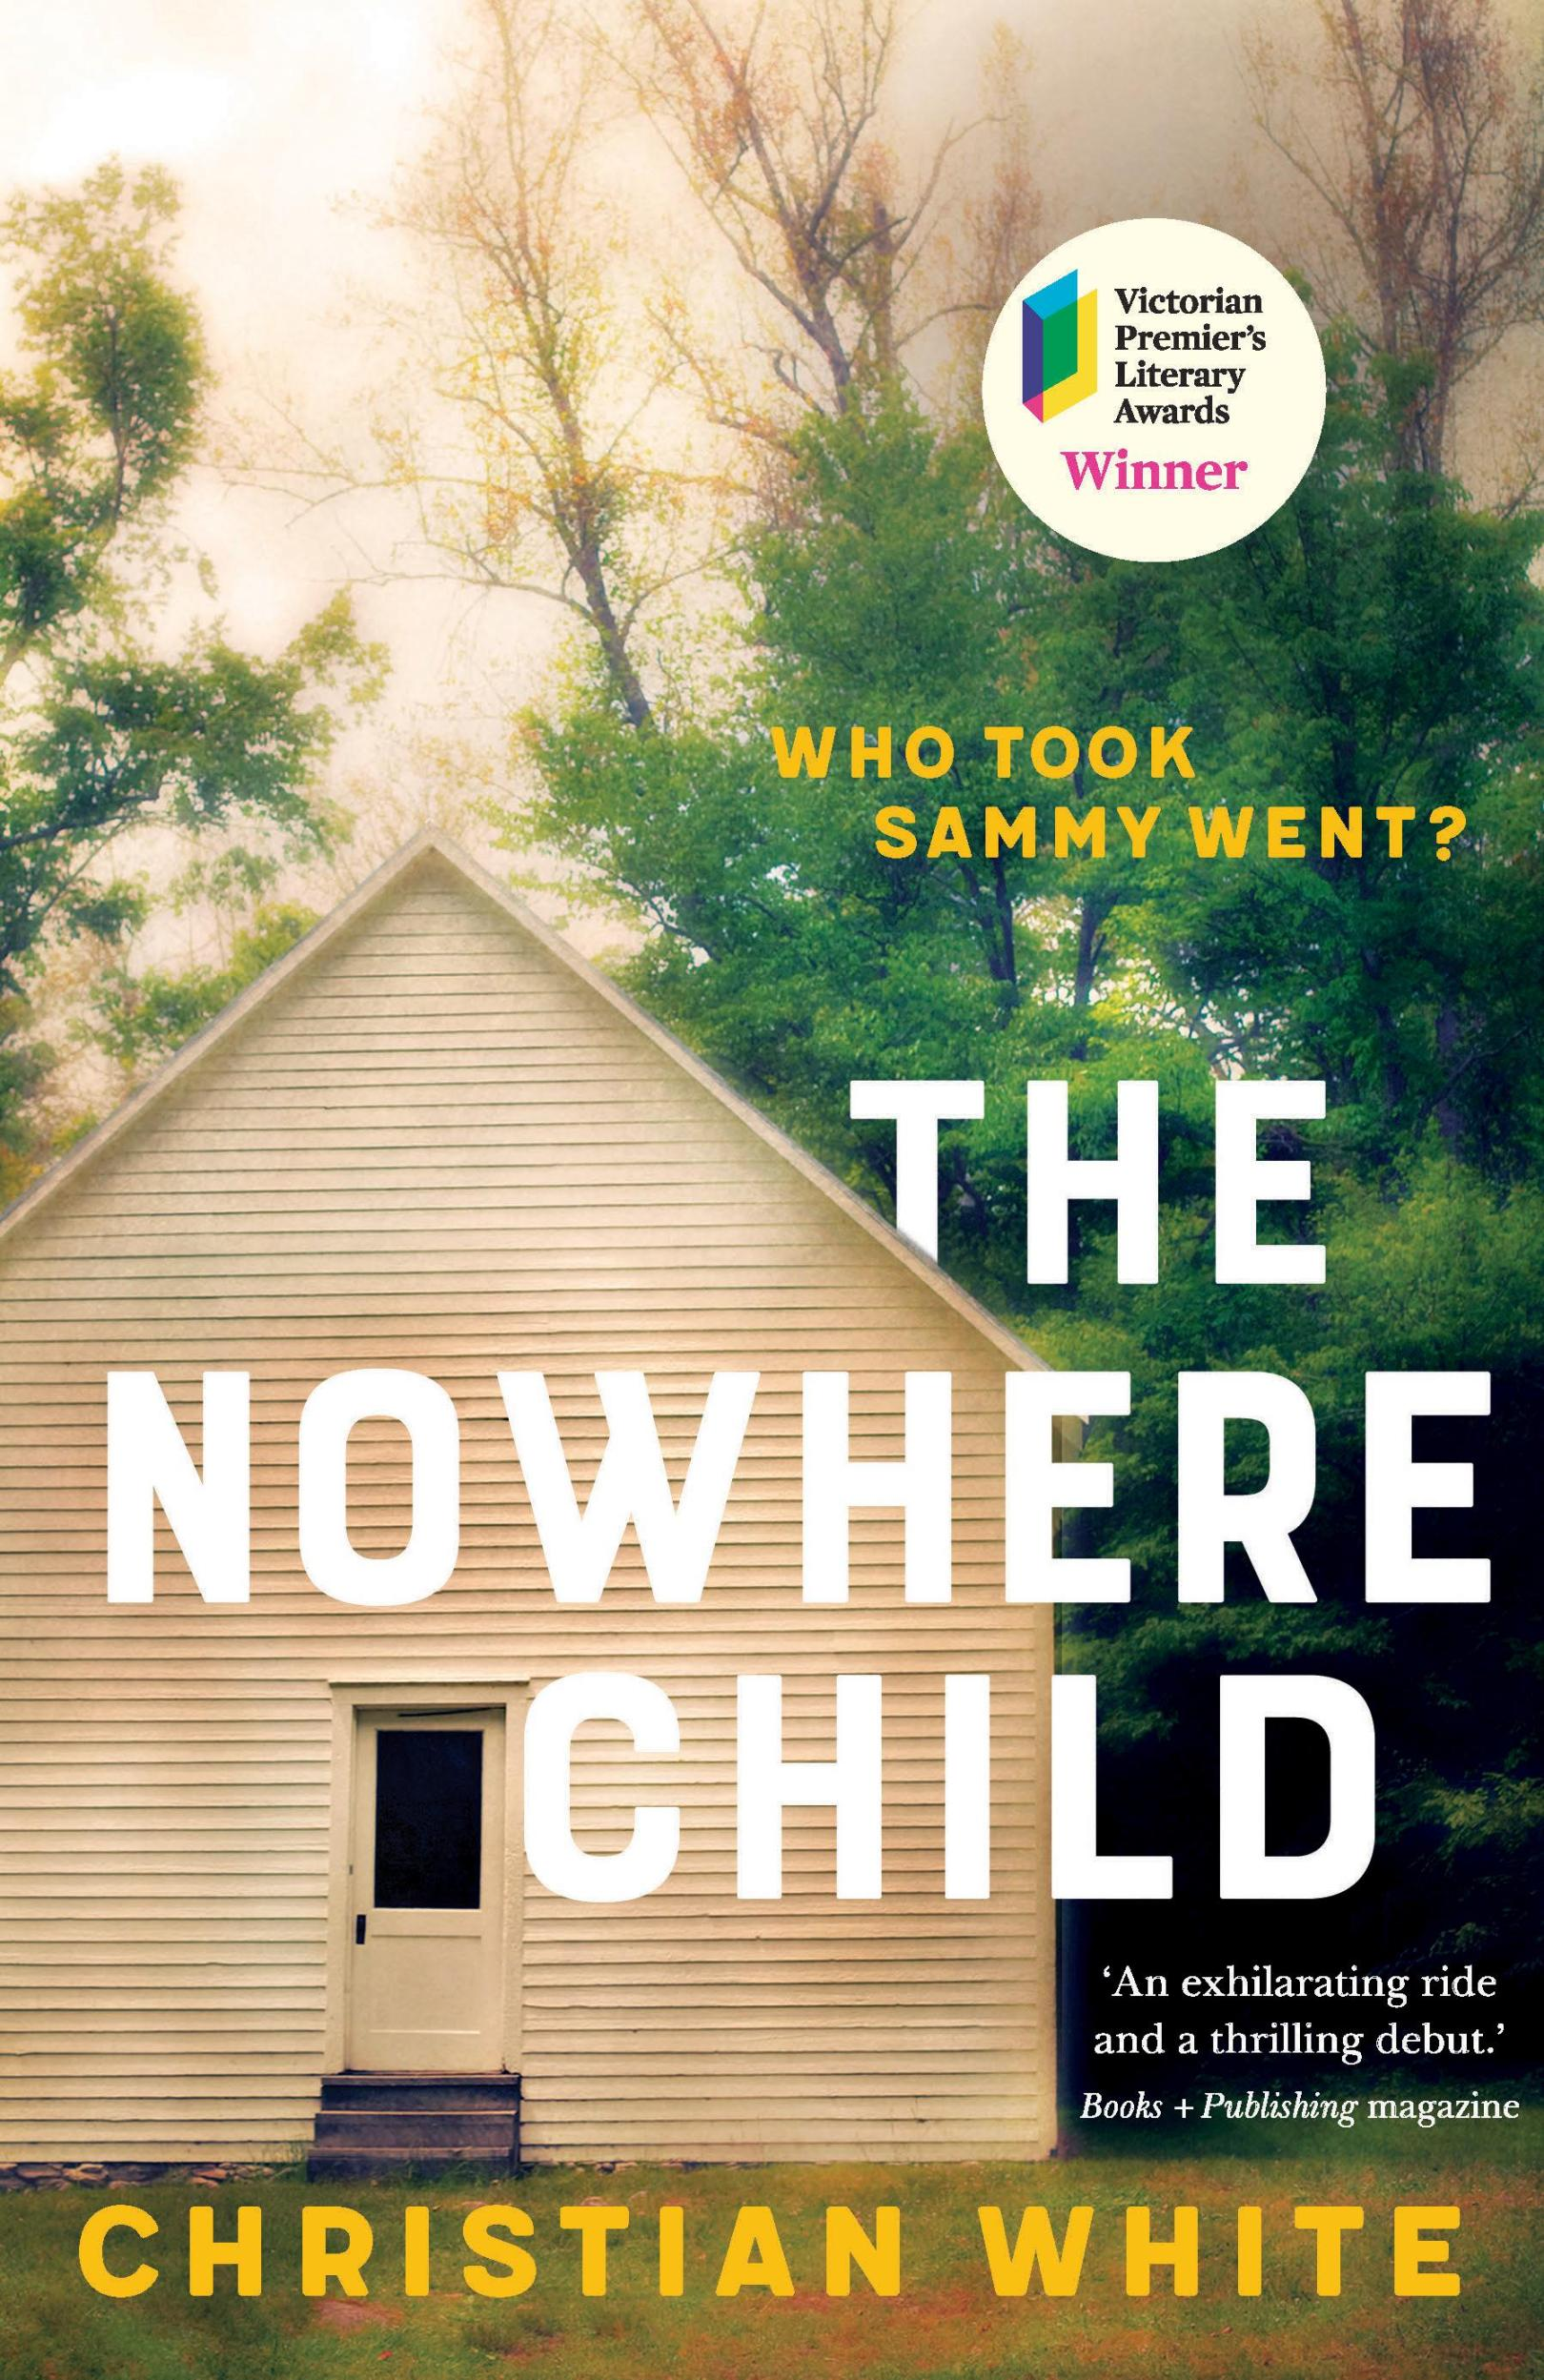 Source:https://www.readings.com.au/products/25196602/the-nowhere-child